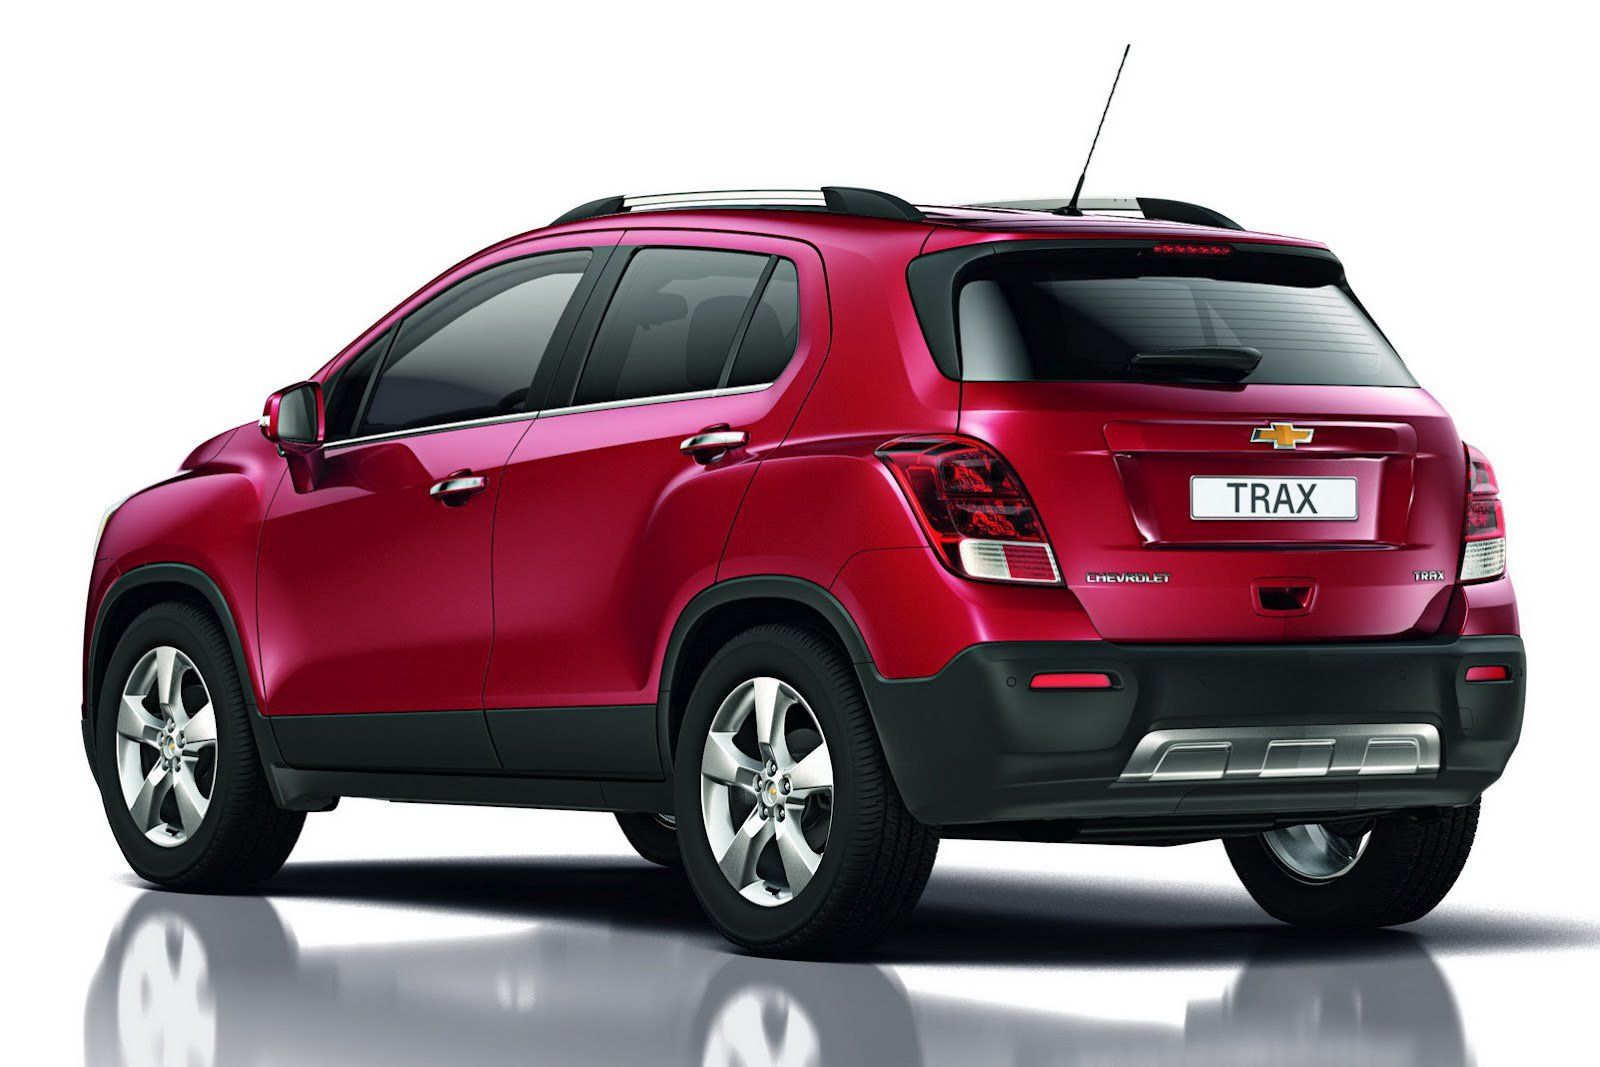 chevrolet trax images #11